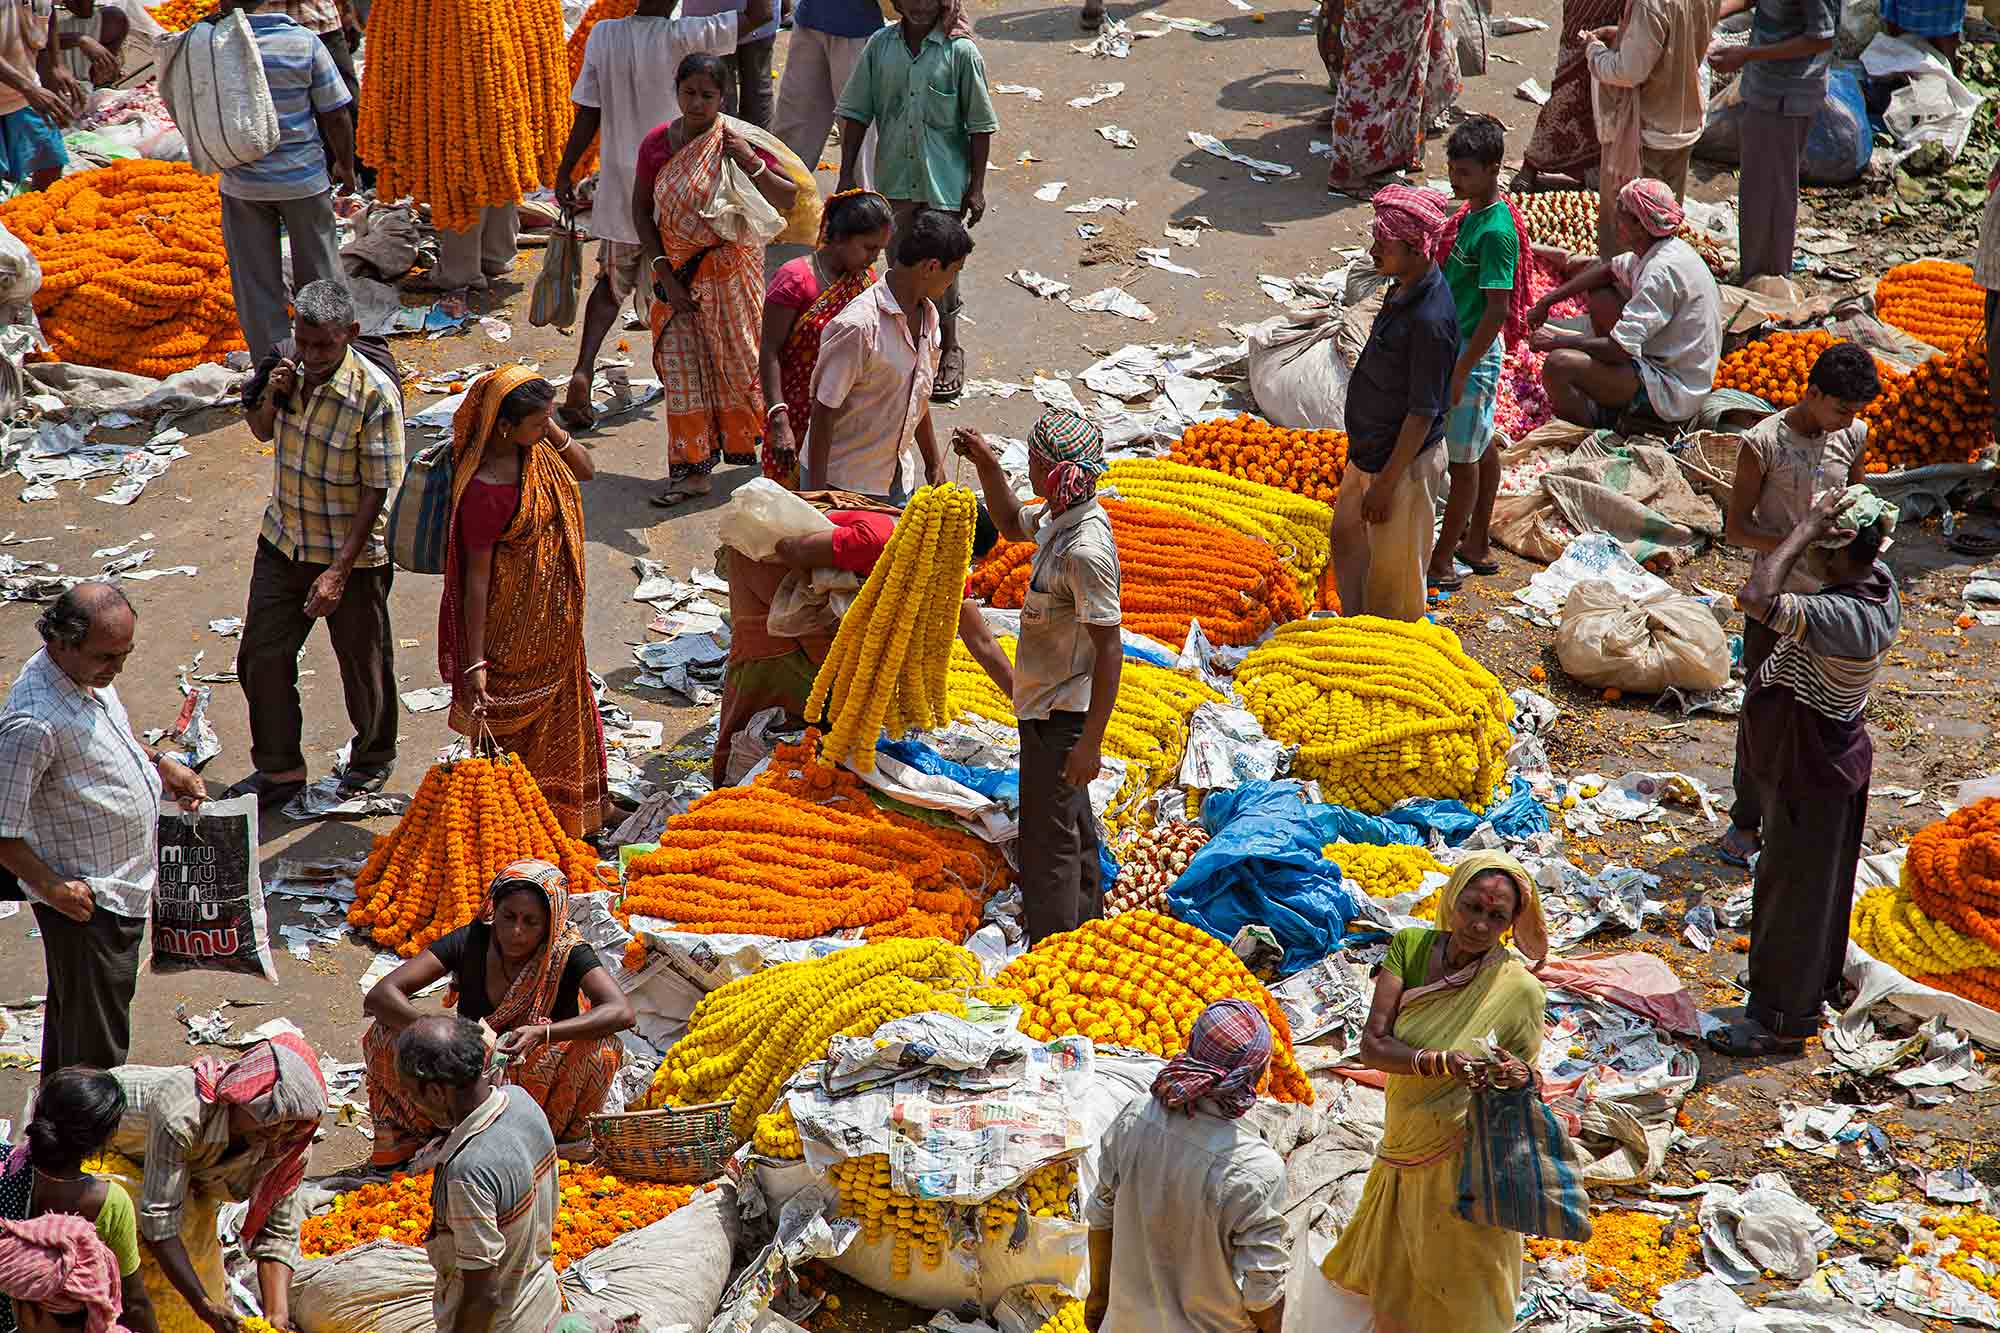 At the Mullik Ghat Flower Market in Kolkata, India. © Ulli Maier & Nisa Maier